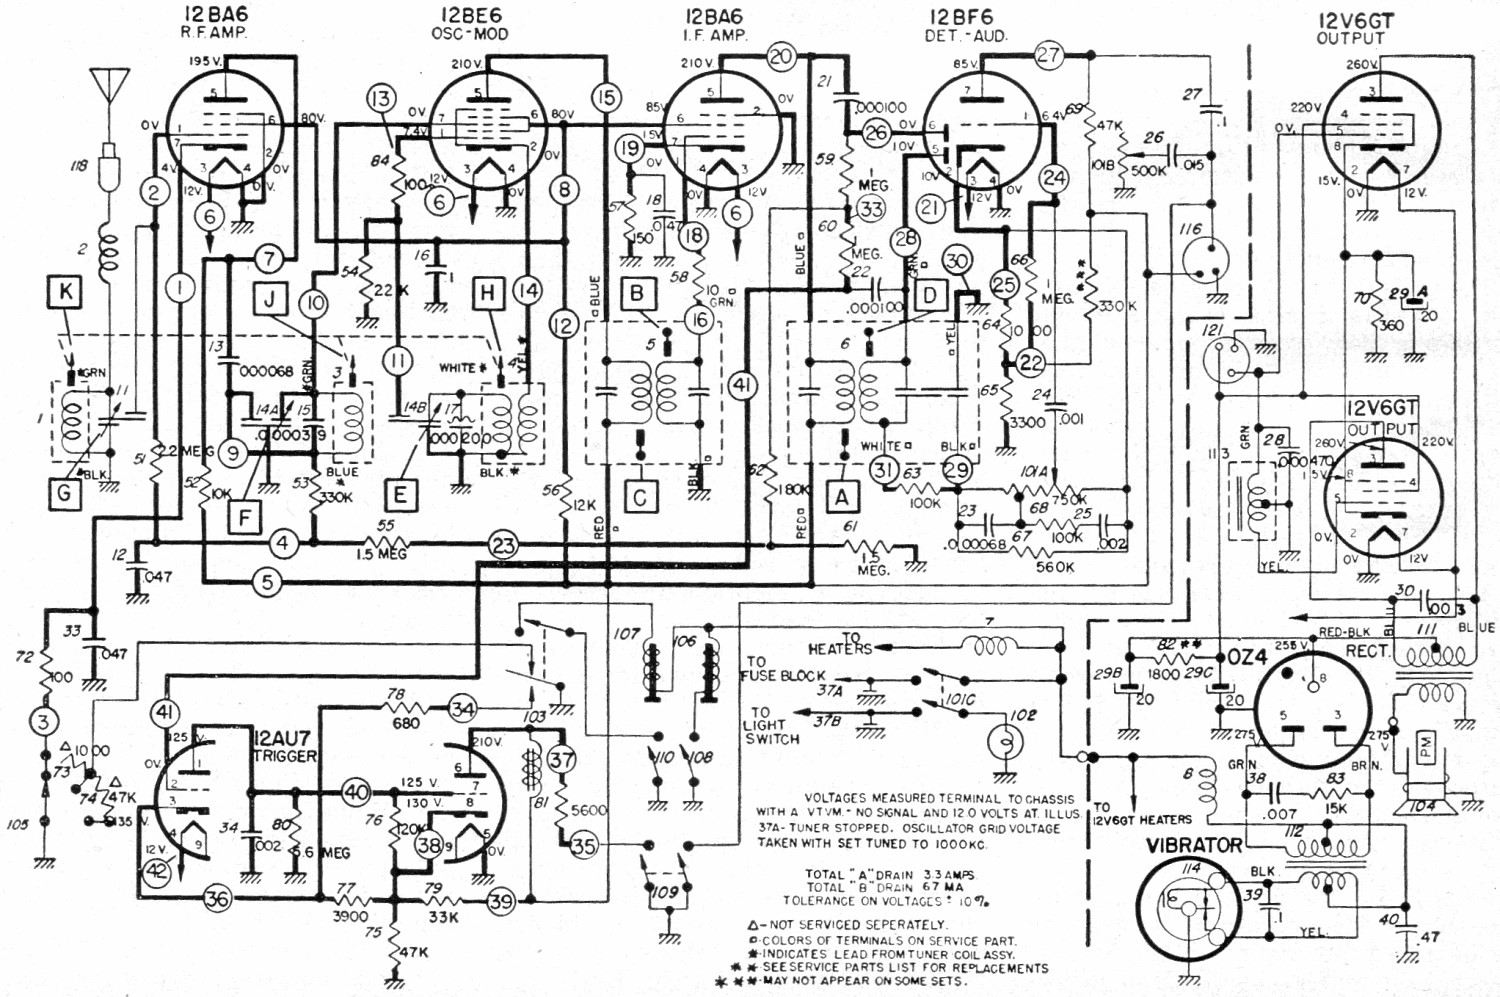 Index besides Bmw X Body Diagram AahHwSsPxGQeYv7B81WDNb3uH3UARSrGB2jLHbJVCYY also Partgrp besides Fuse Box Diagram Bmw E38 likewise Bmw 525i Wiring Diagram Furthermore. on bmw pdc wiring diagram